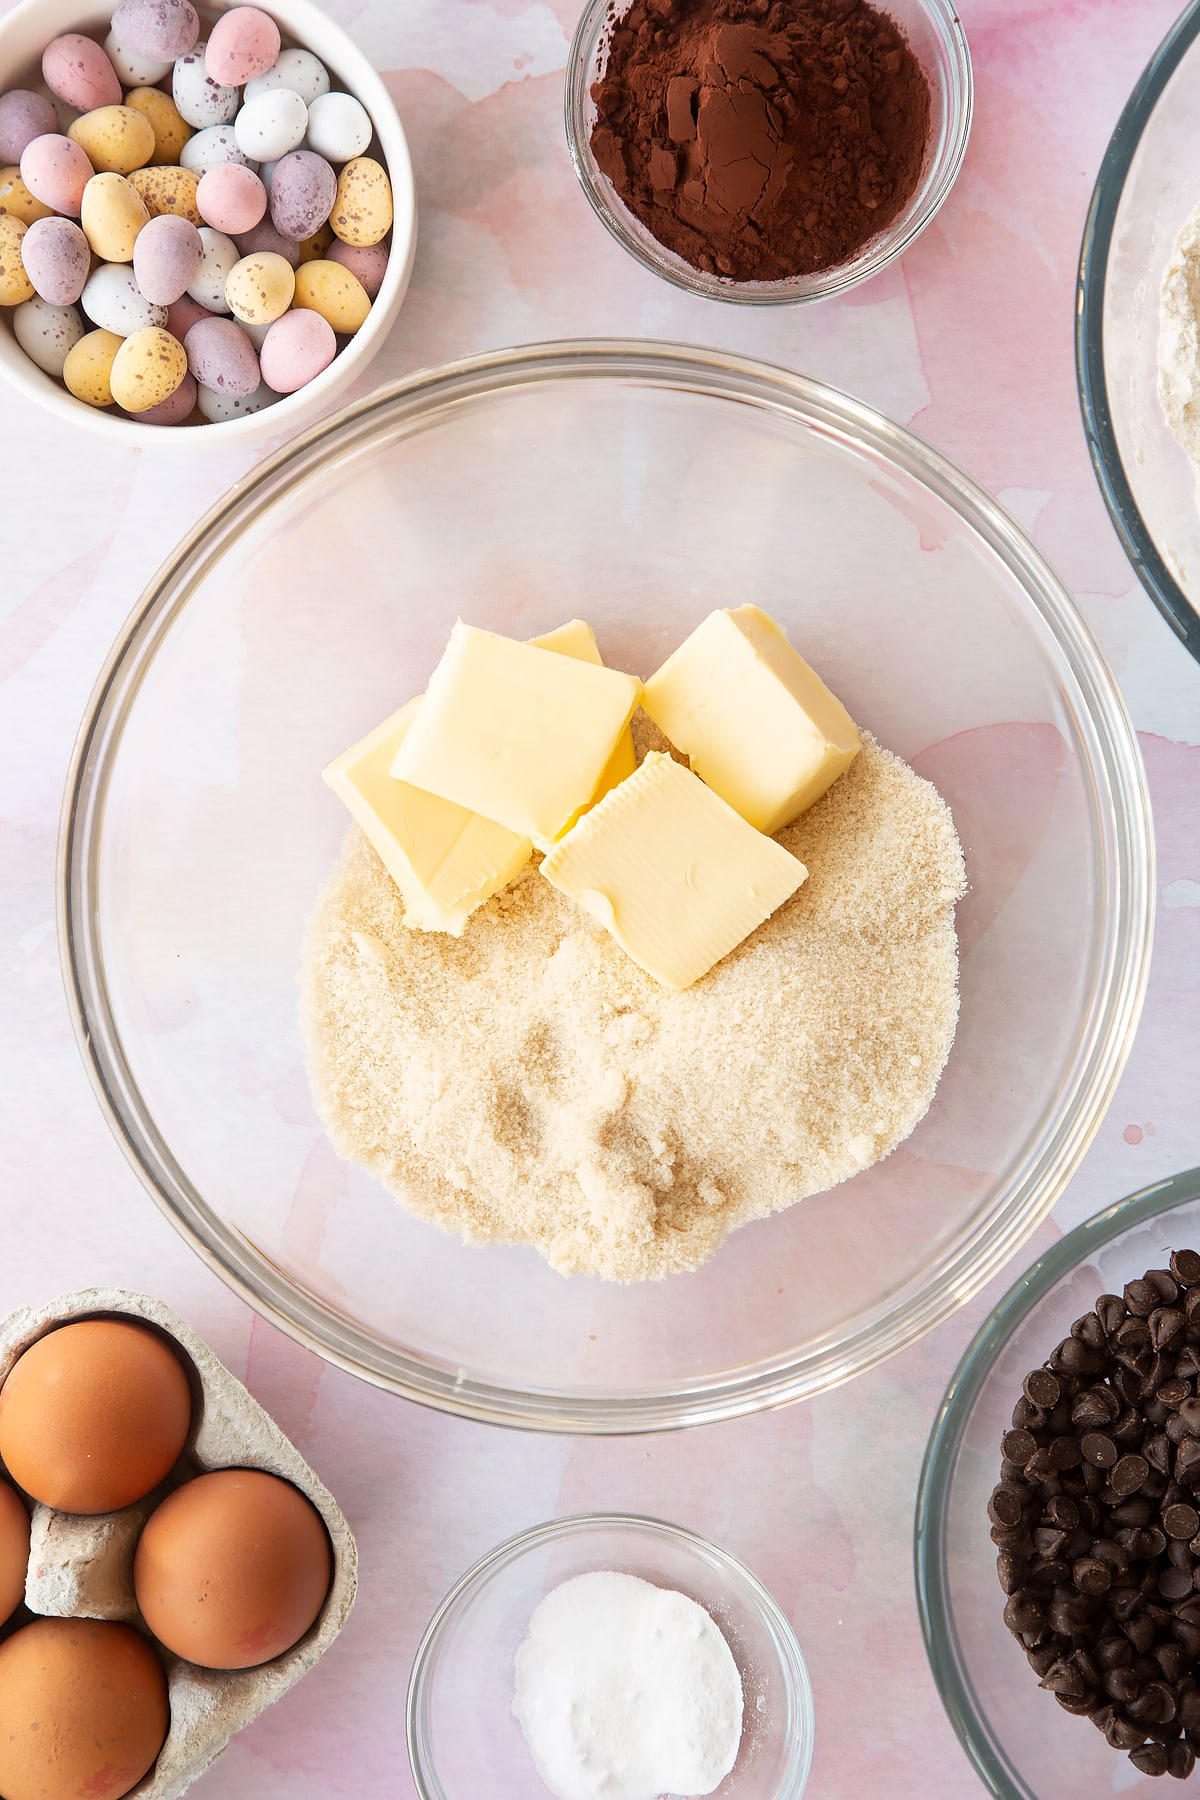 Butter and golden granulated sugar in a bowl. Ingredients to make Chocolate Easter cookies surround the bowl.